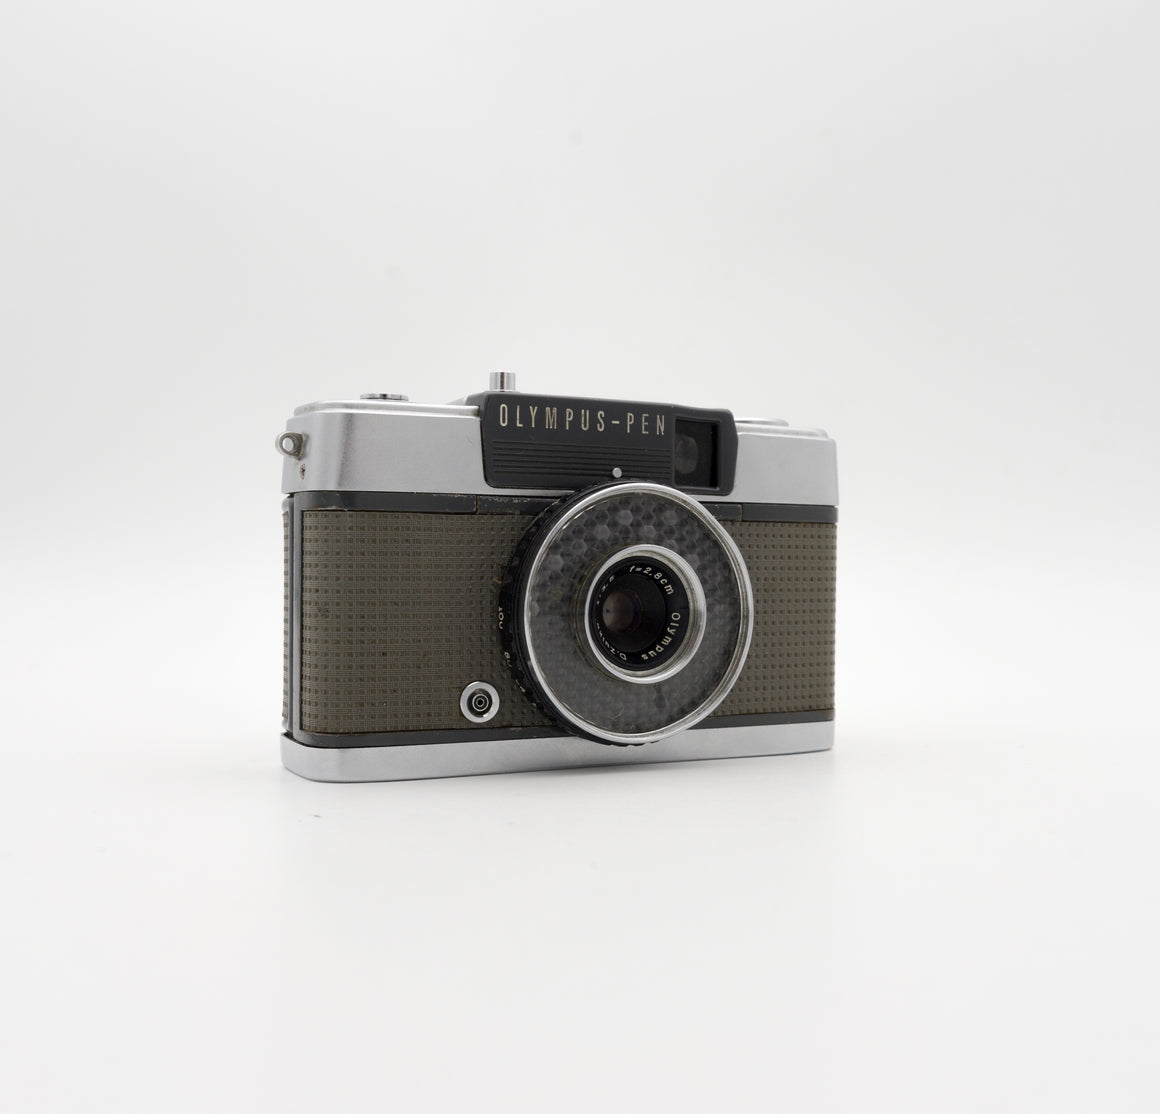 Olympus Pen EE Half-Frame Point & Shoot Camera with 28mm f/3.5 Lens